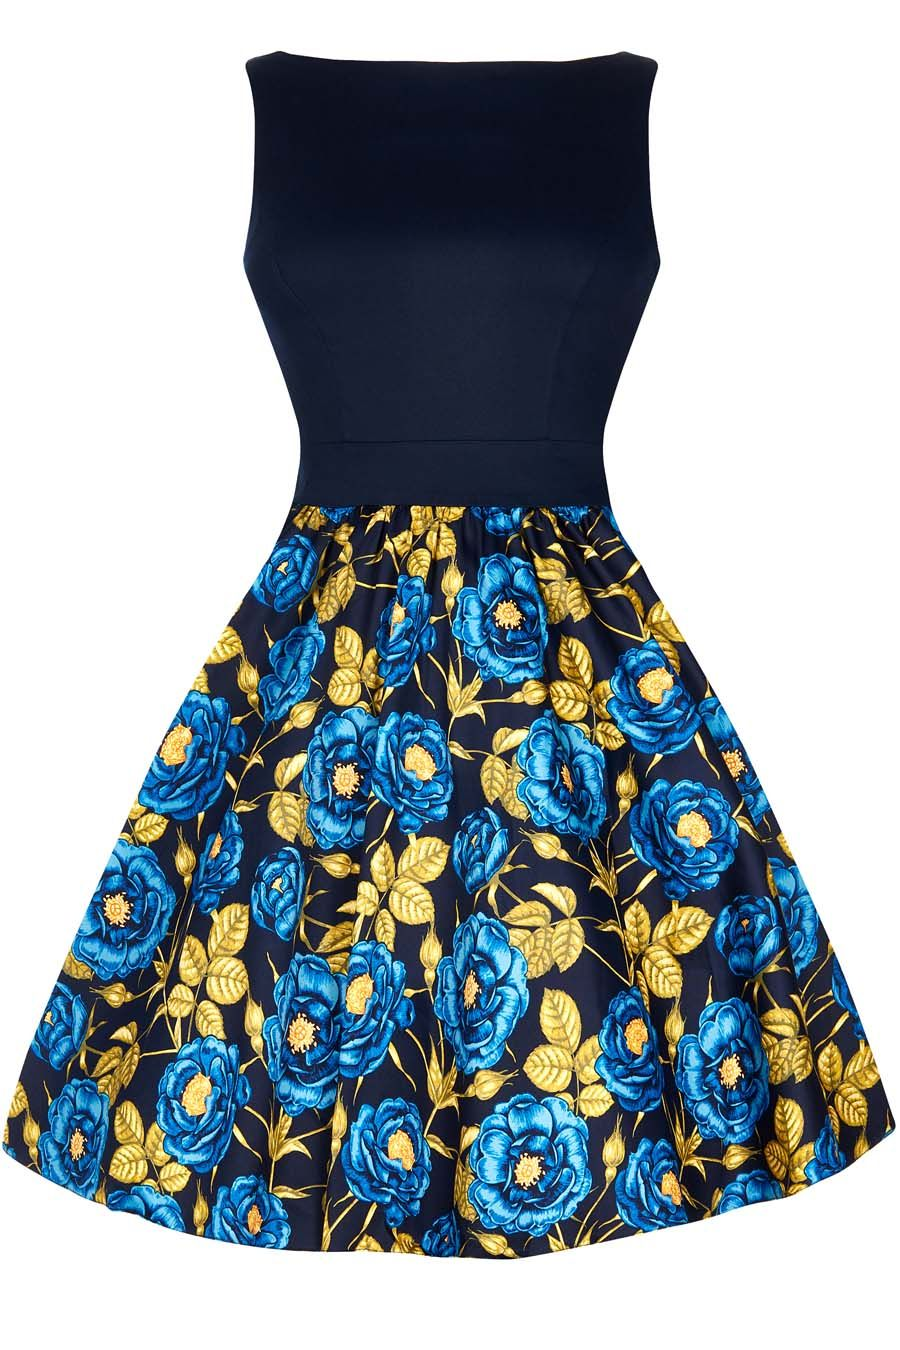 The dress that can be fun, cute, elegant & classy! Our famous Tea ...